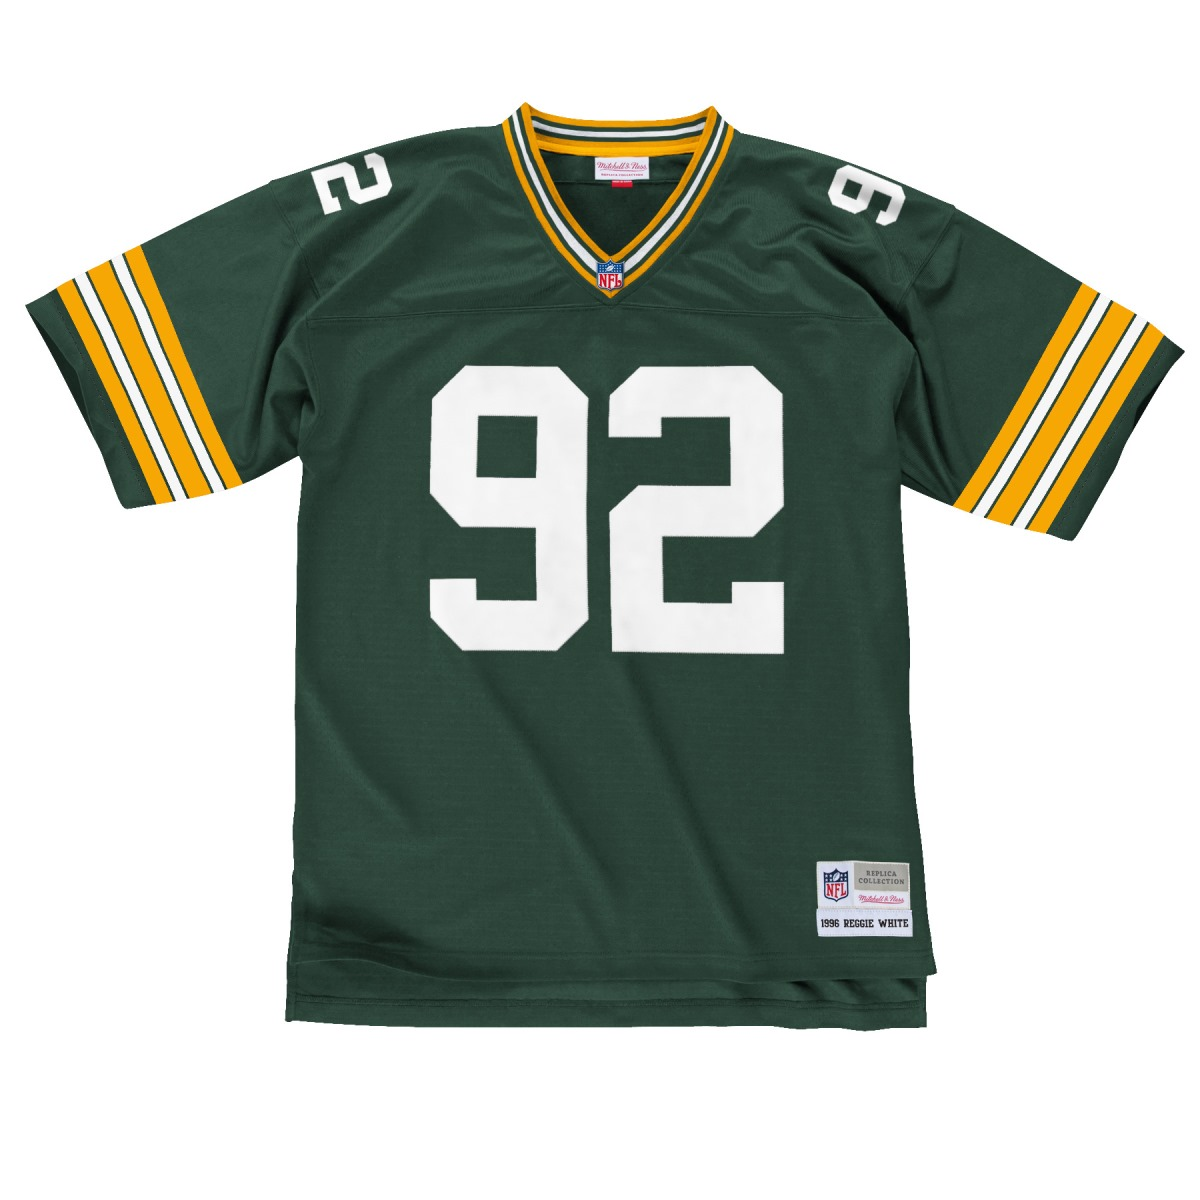 Reggie White Green Bay Packers NFL Mitchell & Ness Throwback Jersey - Green